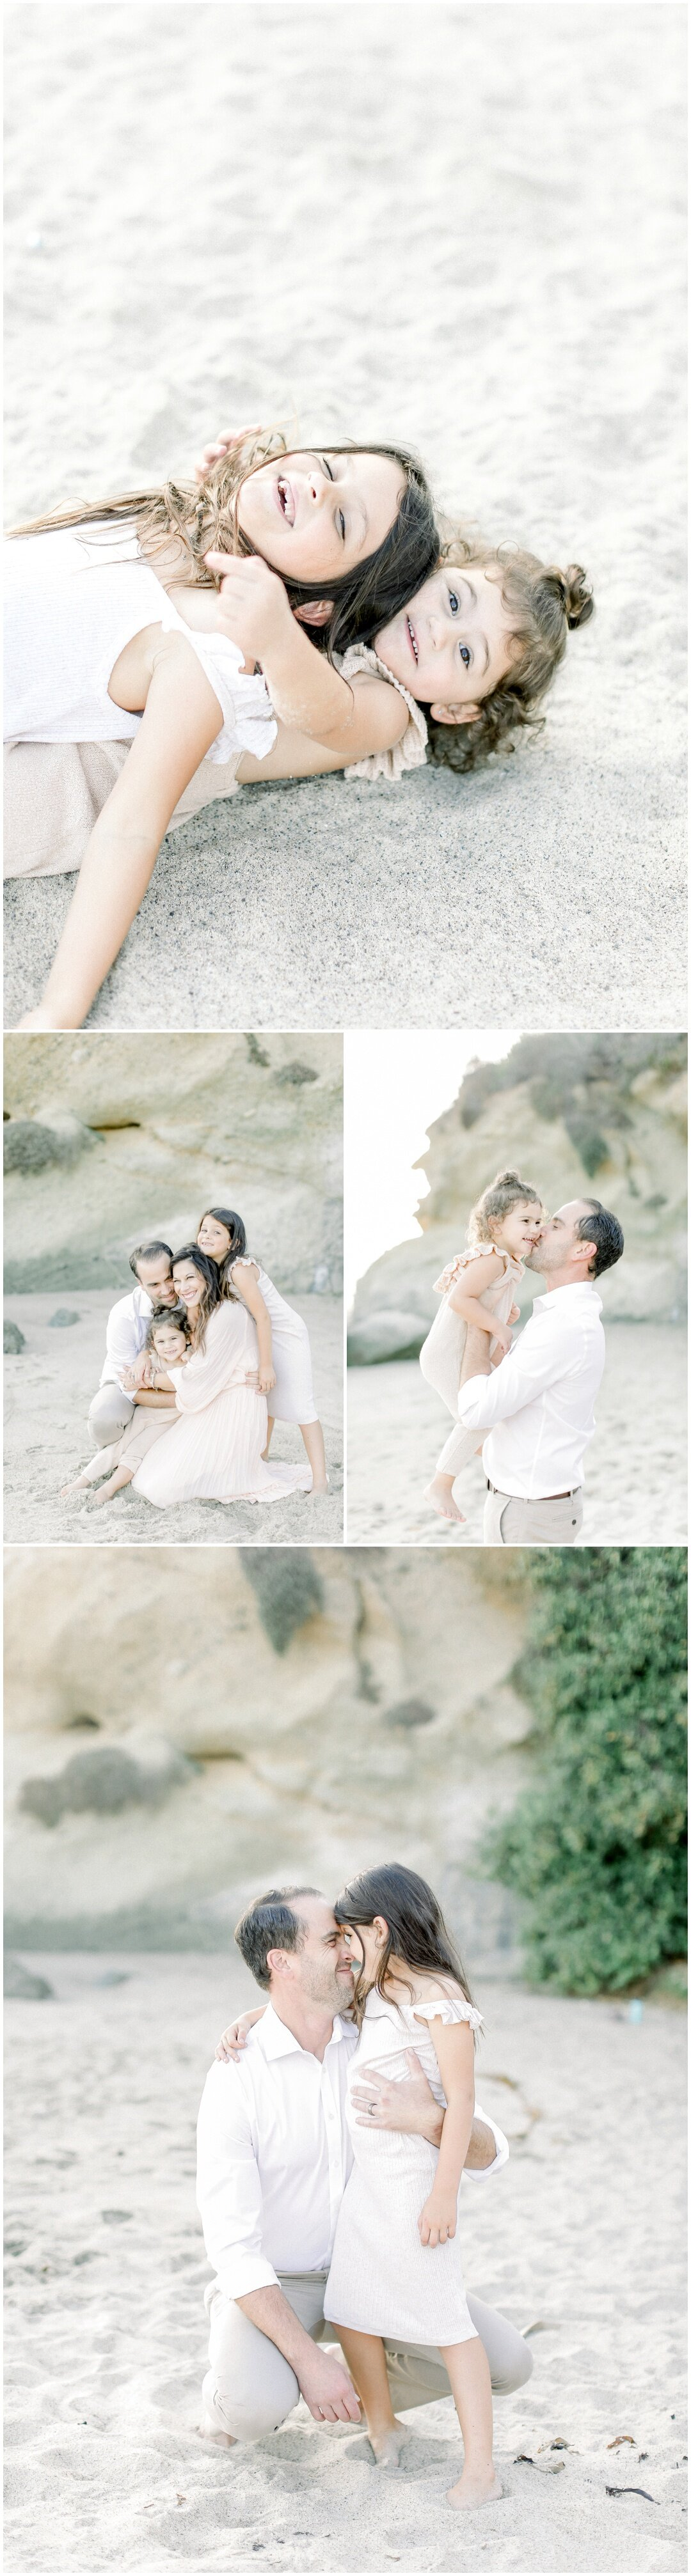 Newport+Beach+Newborn+Maternity+Photographer+Orange+County+Family+Photographer+Cori+Kleckner+Photography+Natalie+Hay+Loretz+Robert+Hay+The+Hay+Family_4450.jpg